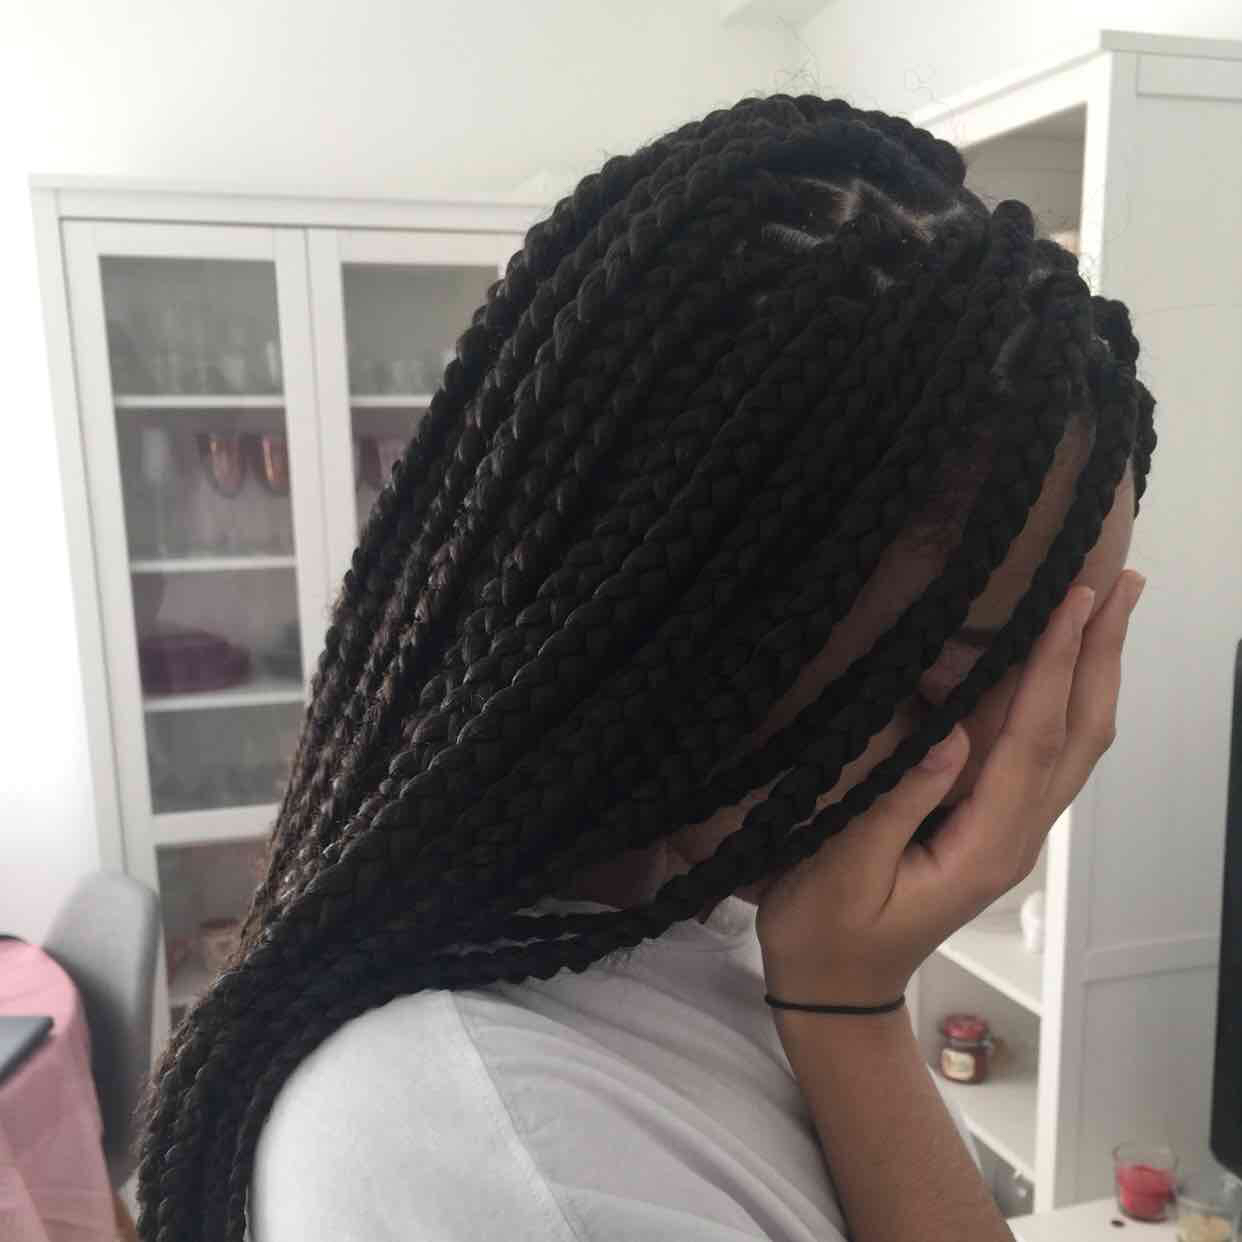 salon de coiffure afro tresse tresses box braids crochet braids vanilles tissages paris 75 77 78 91 92 93 94 95 KUPODLMO